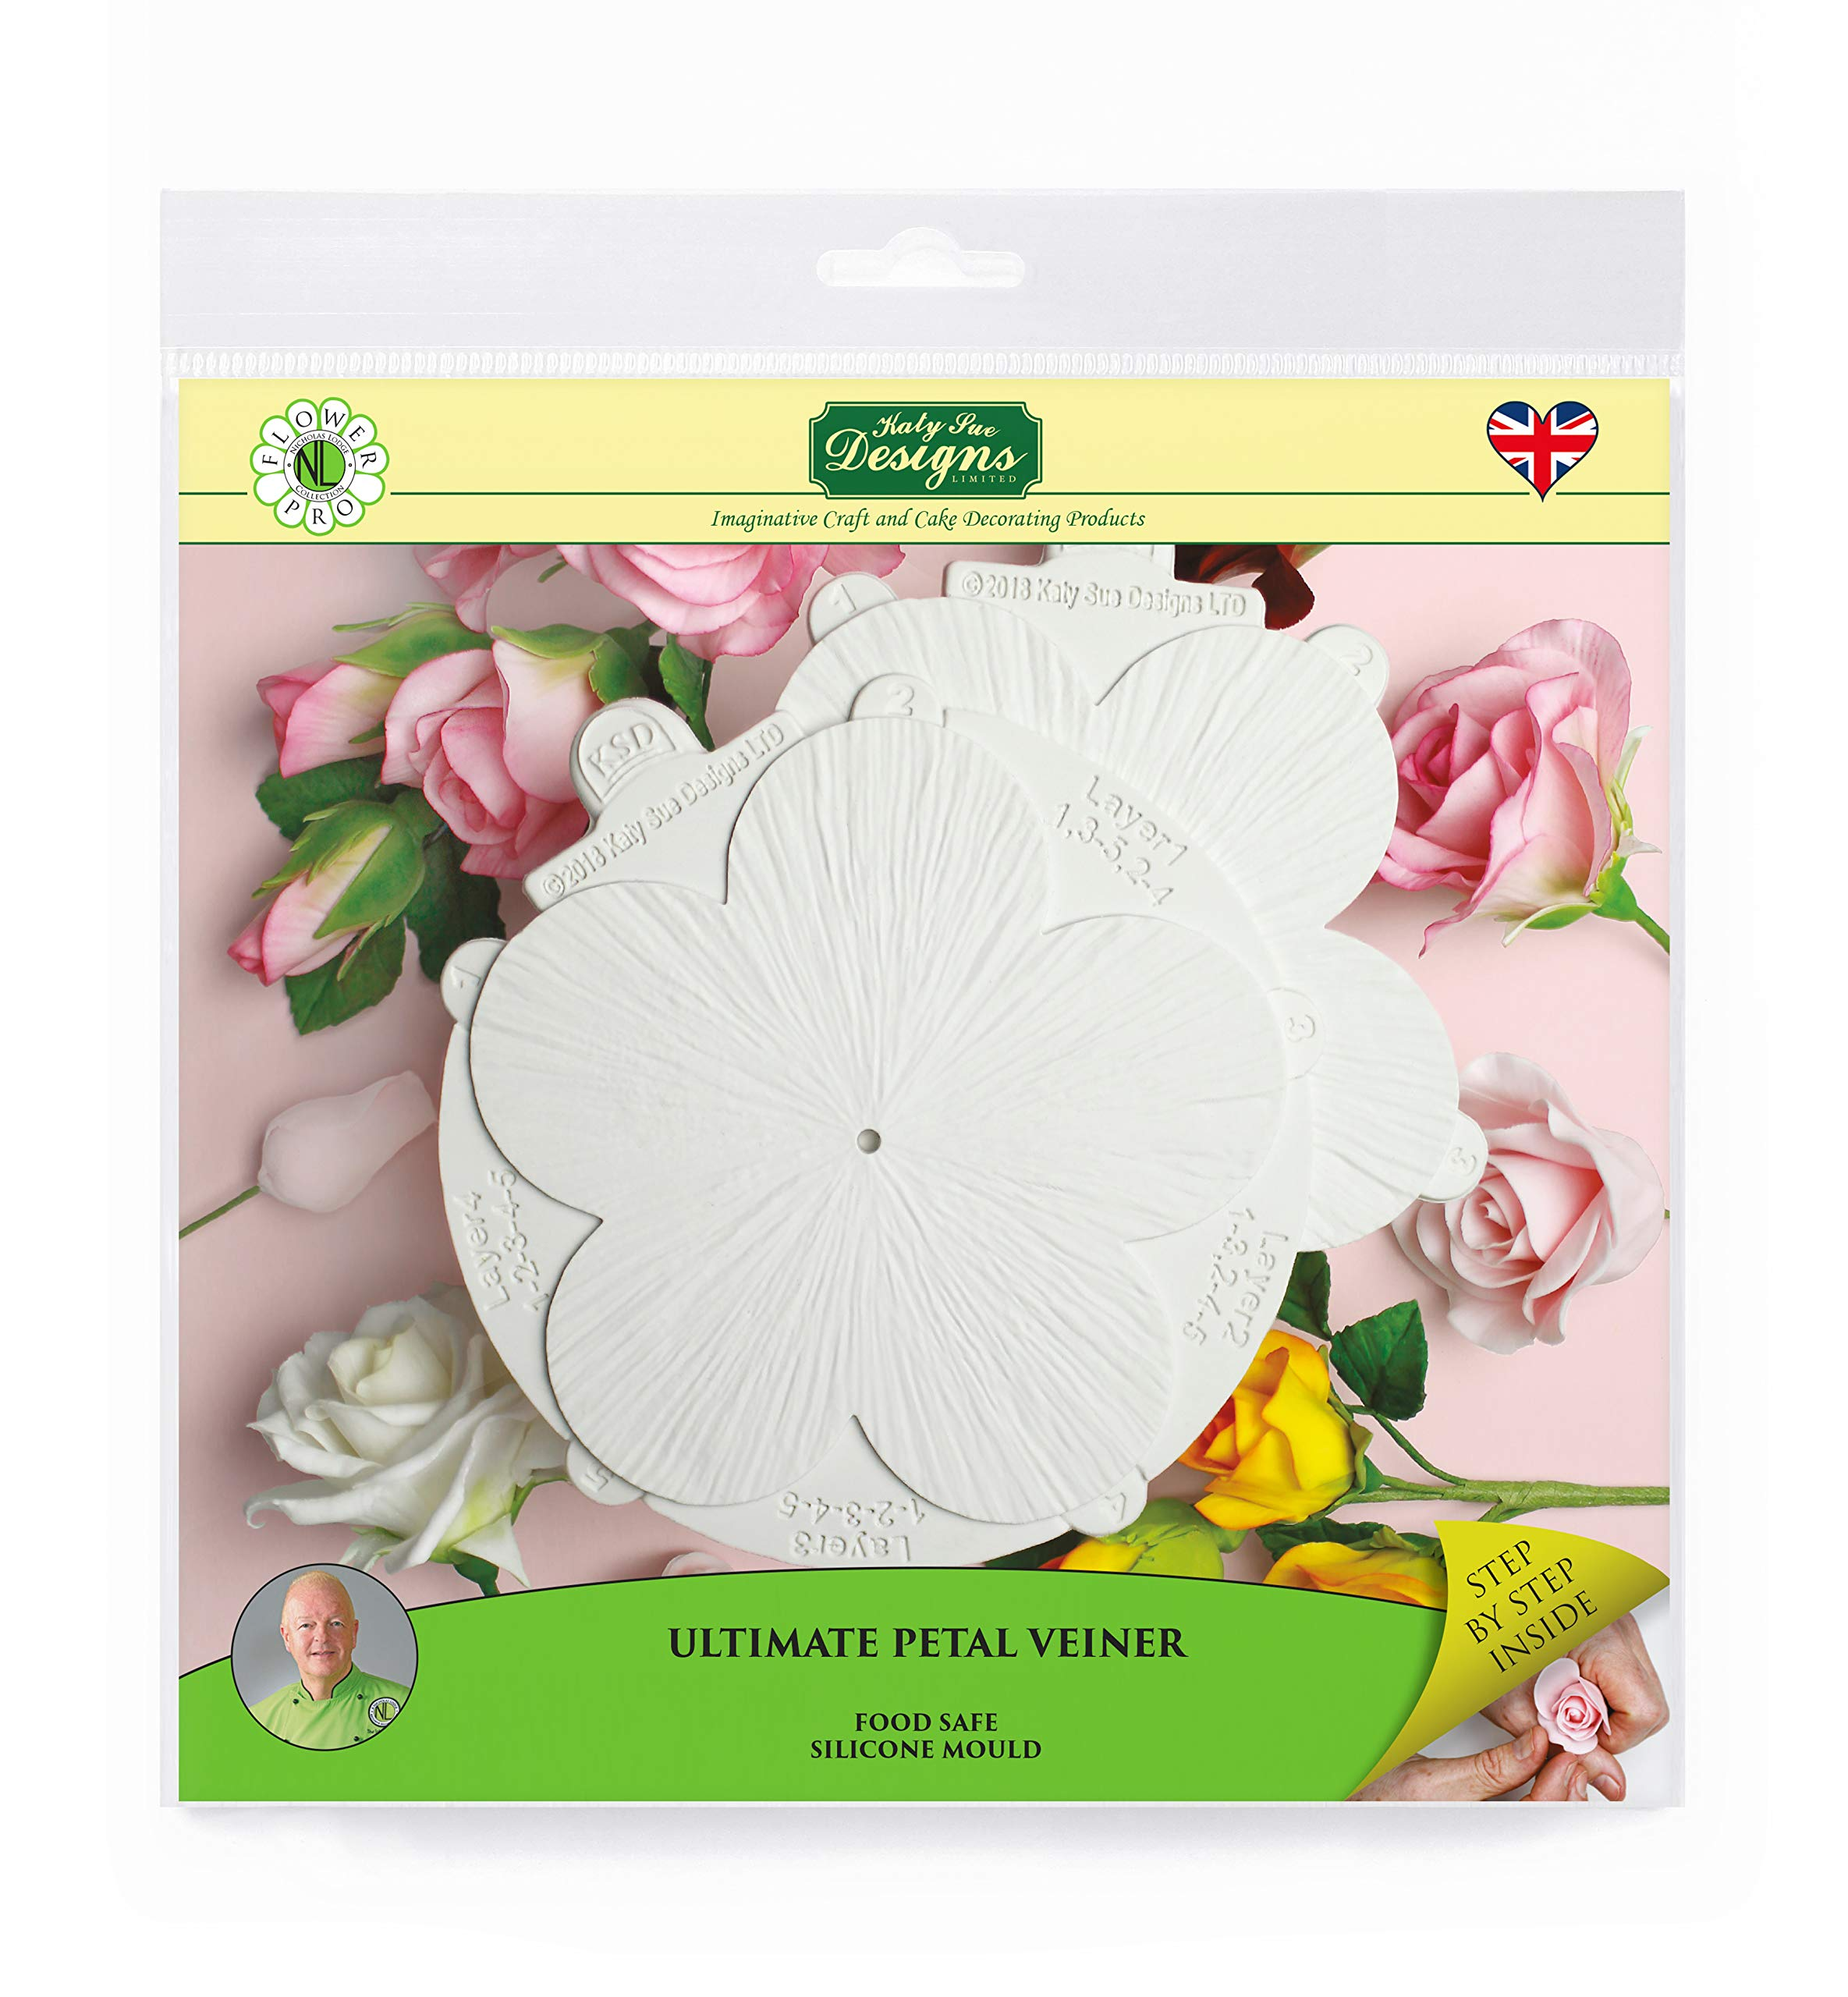 Pro Ultimate Petal Veiner Silicone Sugarpaste Icing Mold, Nicholas Lodge Flower Pro for Cake Decorating, Sugarcraft, Candies and Crafts, Food Safe